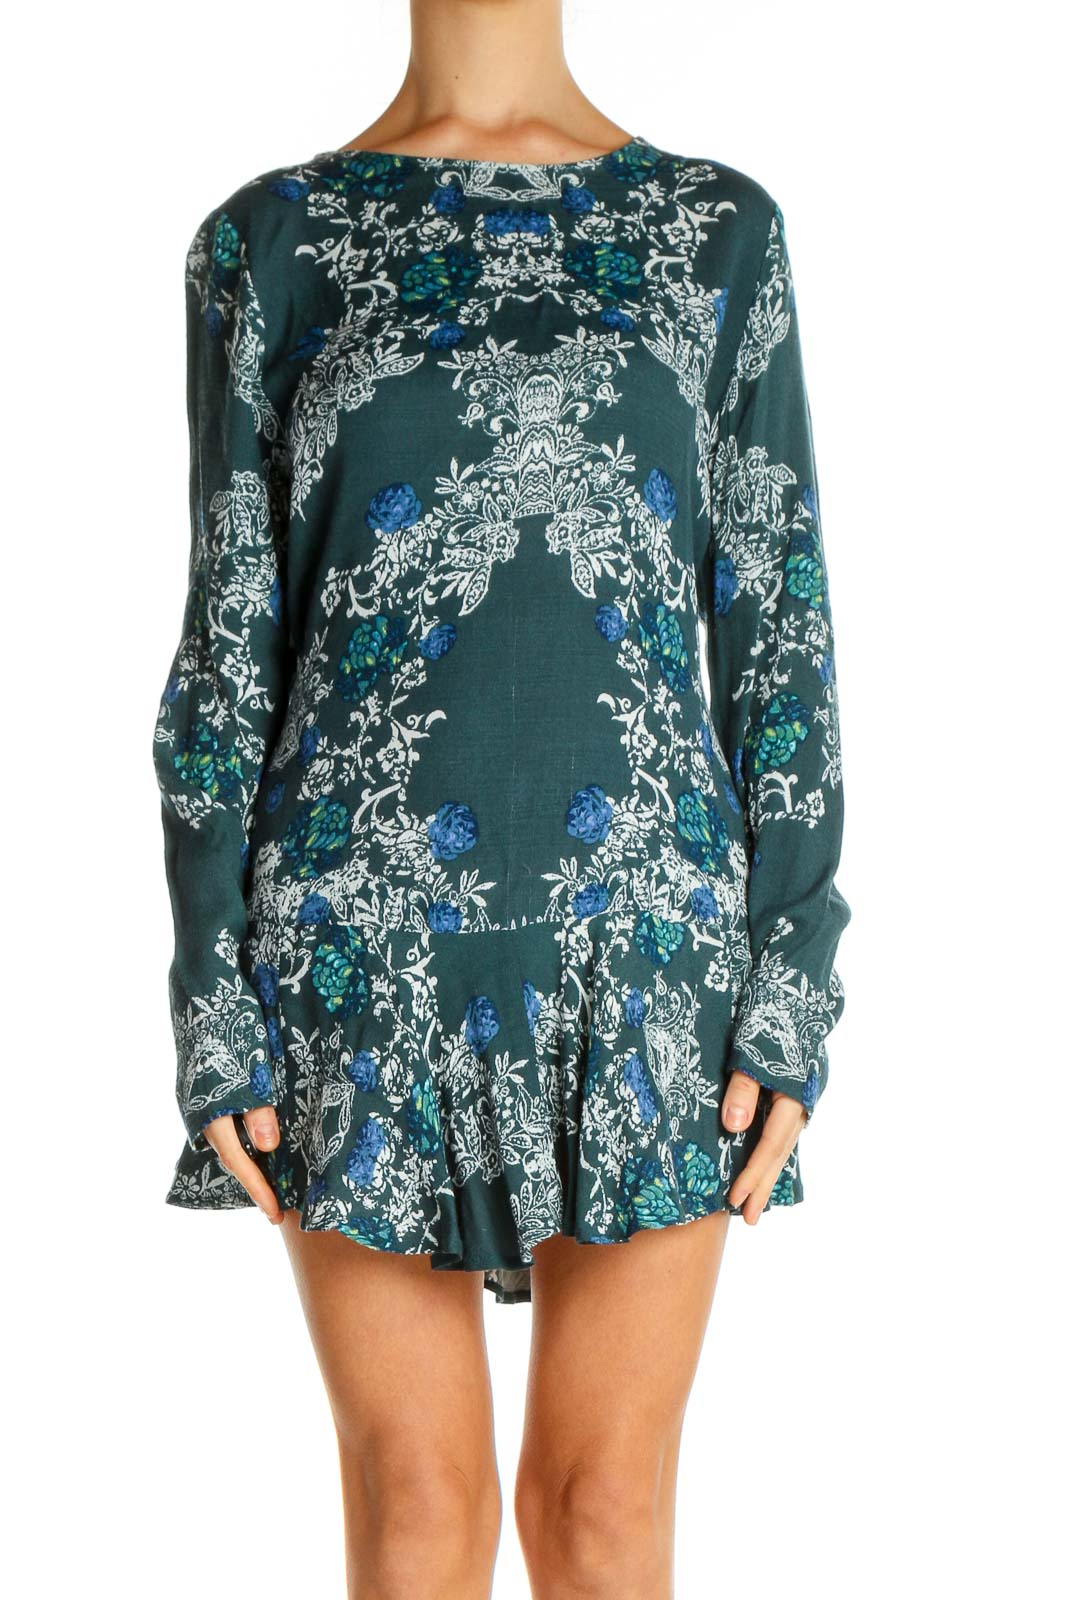 Green Floral Print Holiday Sheath Dress Front